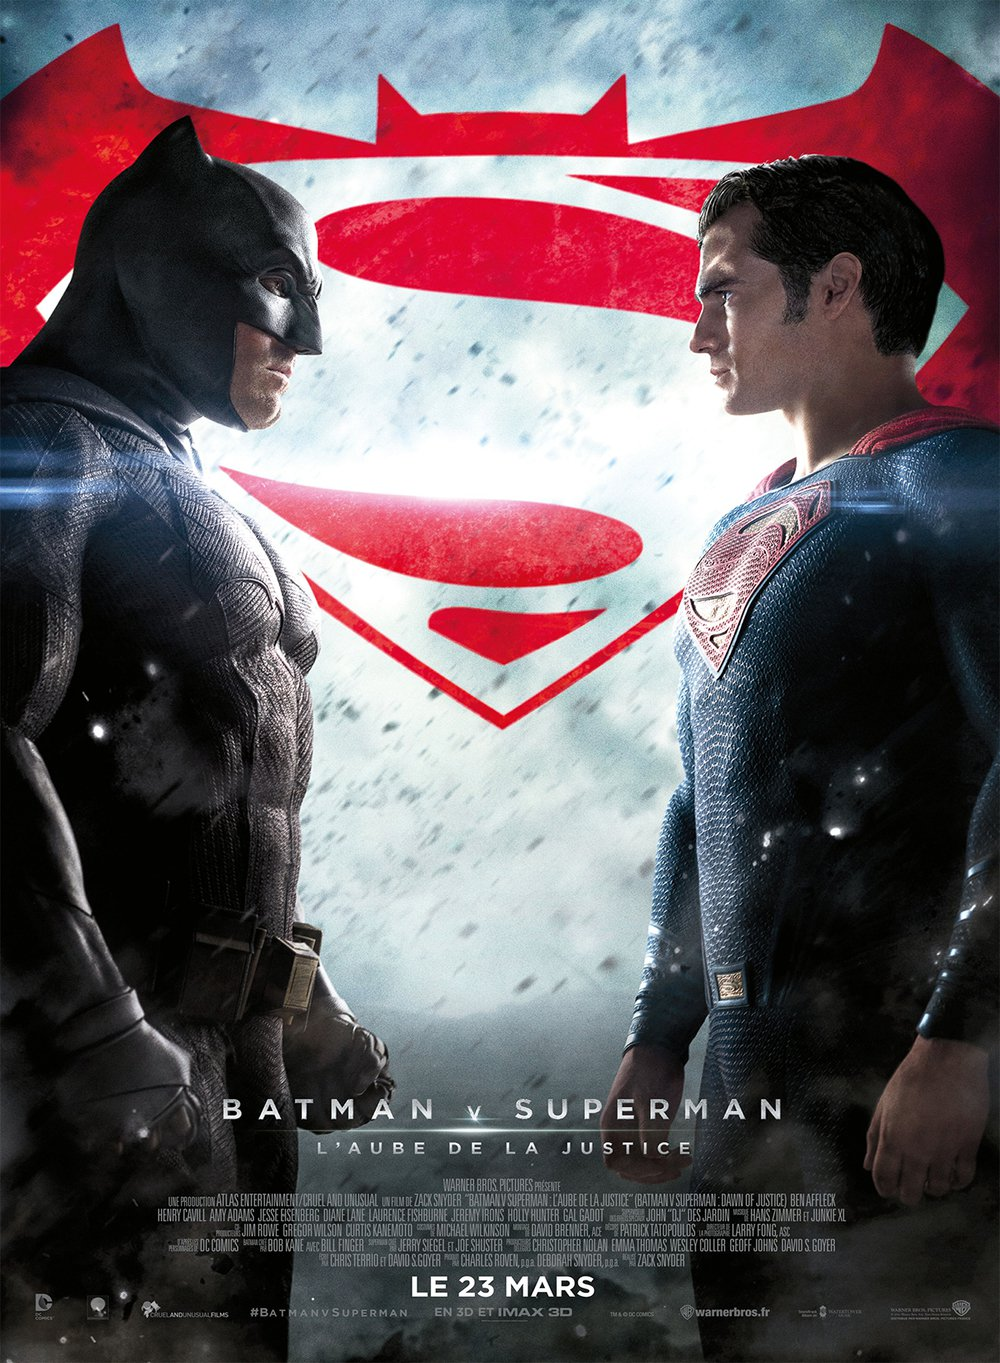 affiche du film Batman vs Superman : L'Aube de la Justice